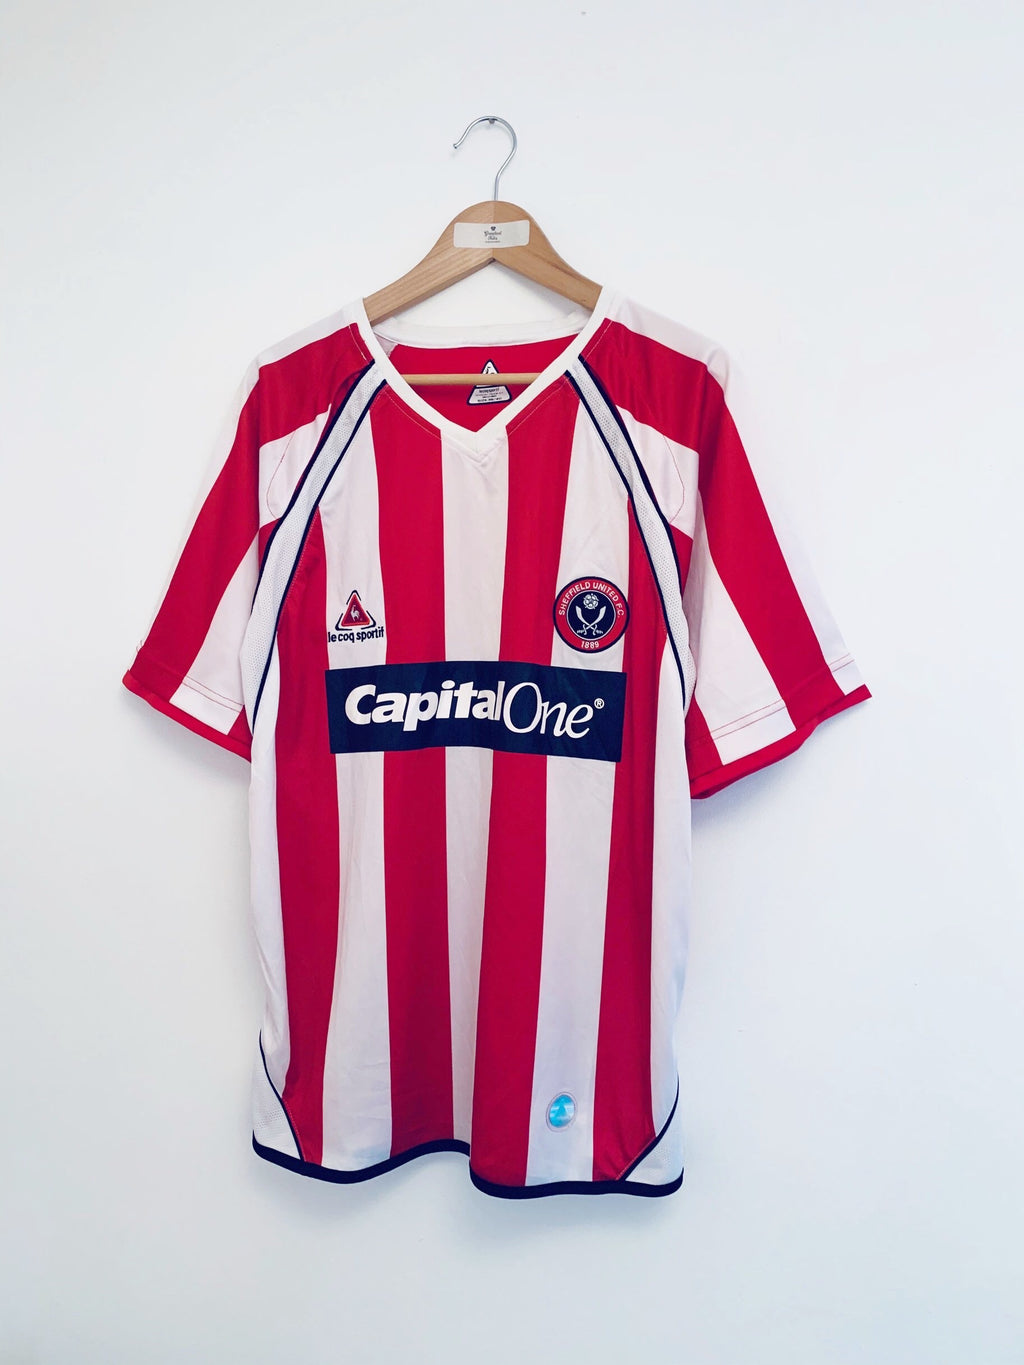 2006/07 Sheffield United Home Shirt (M) 9/10